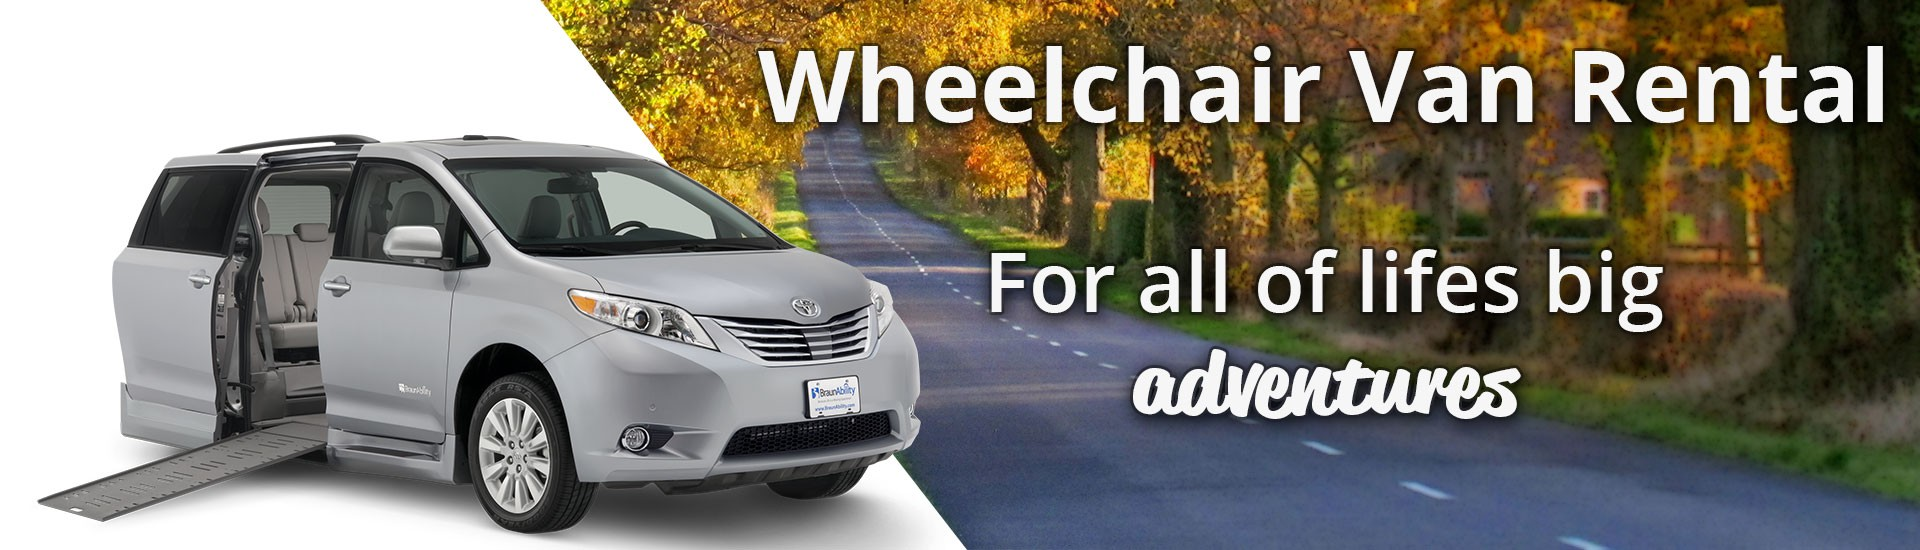 Wheelchair Van Rental Illinois